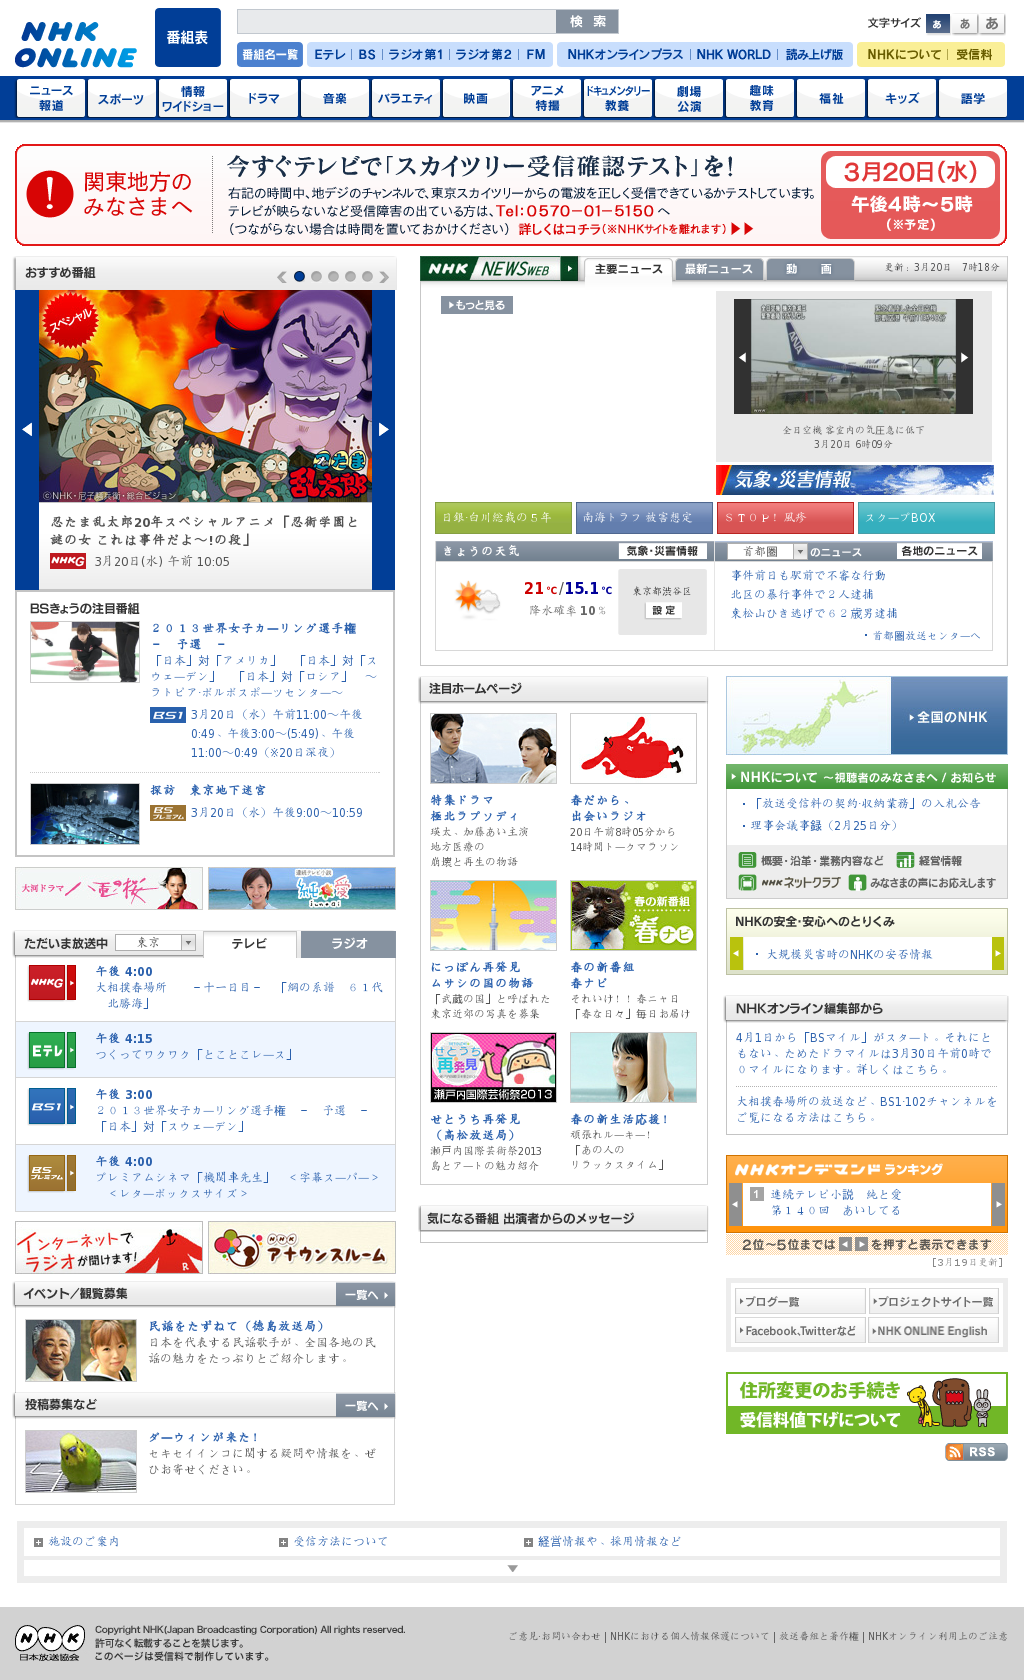 NHK Online at Wednesday March 20, 2013, 7:19 a.m. UTC